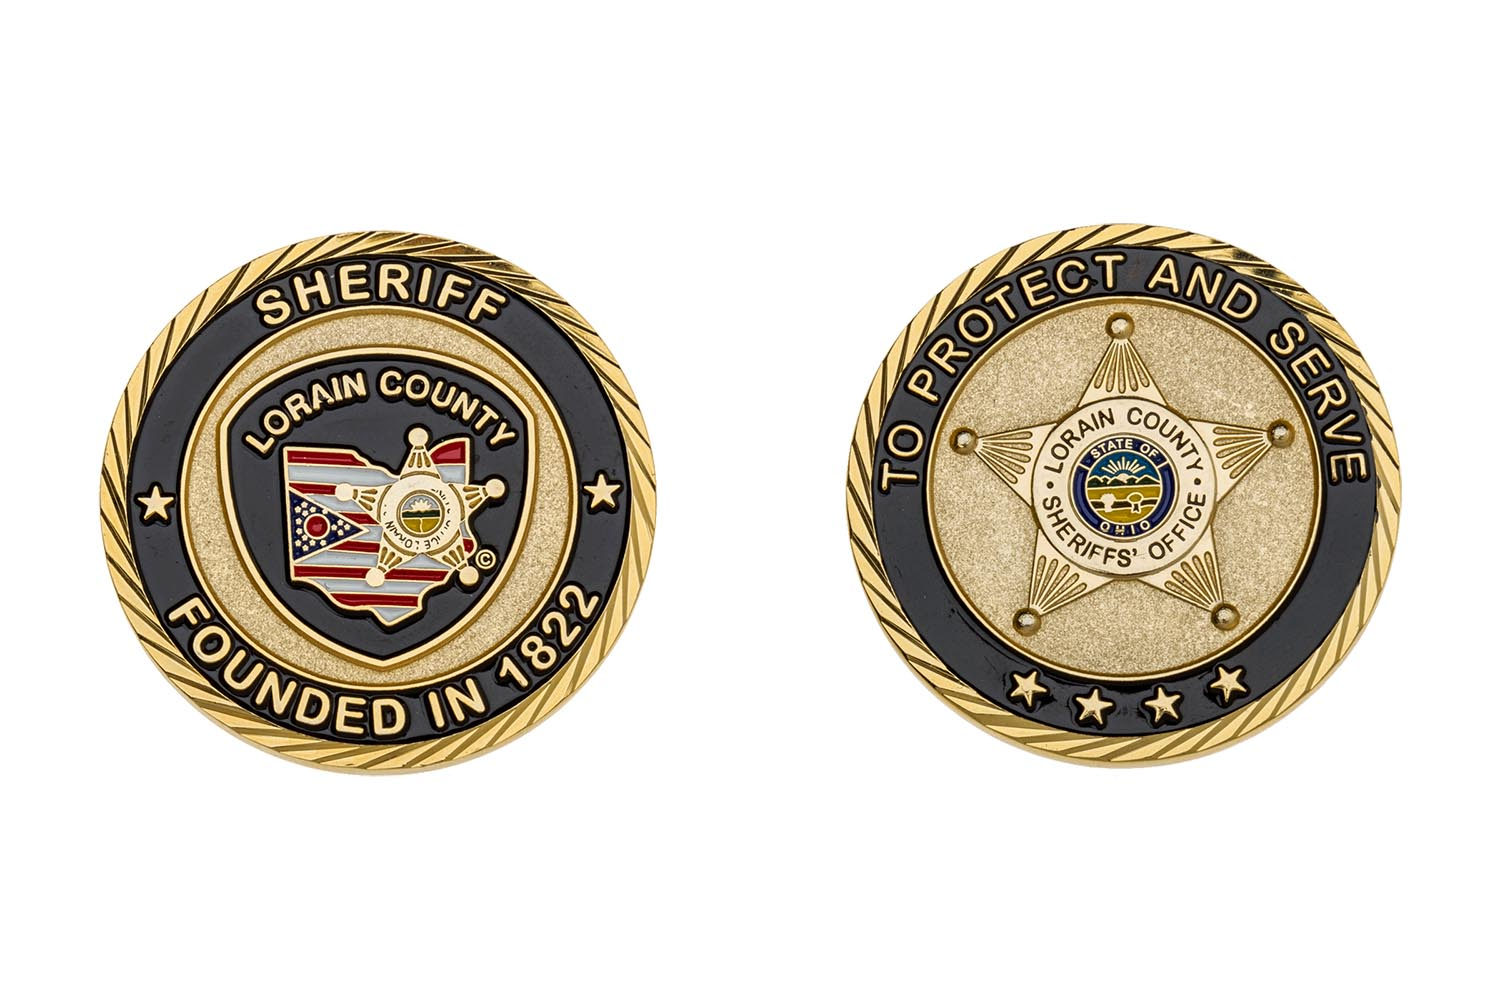 Metal sheriff coins